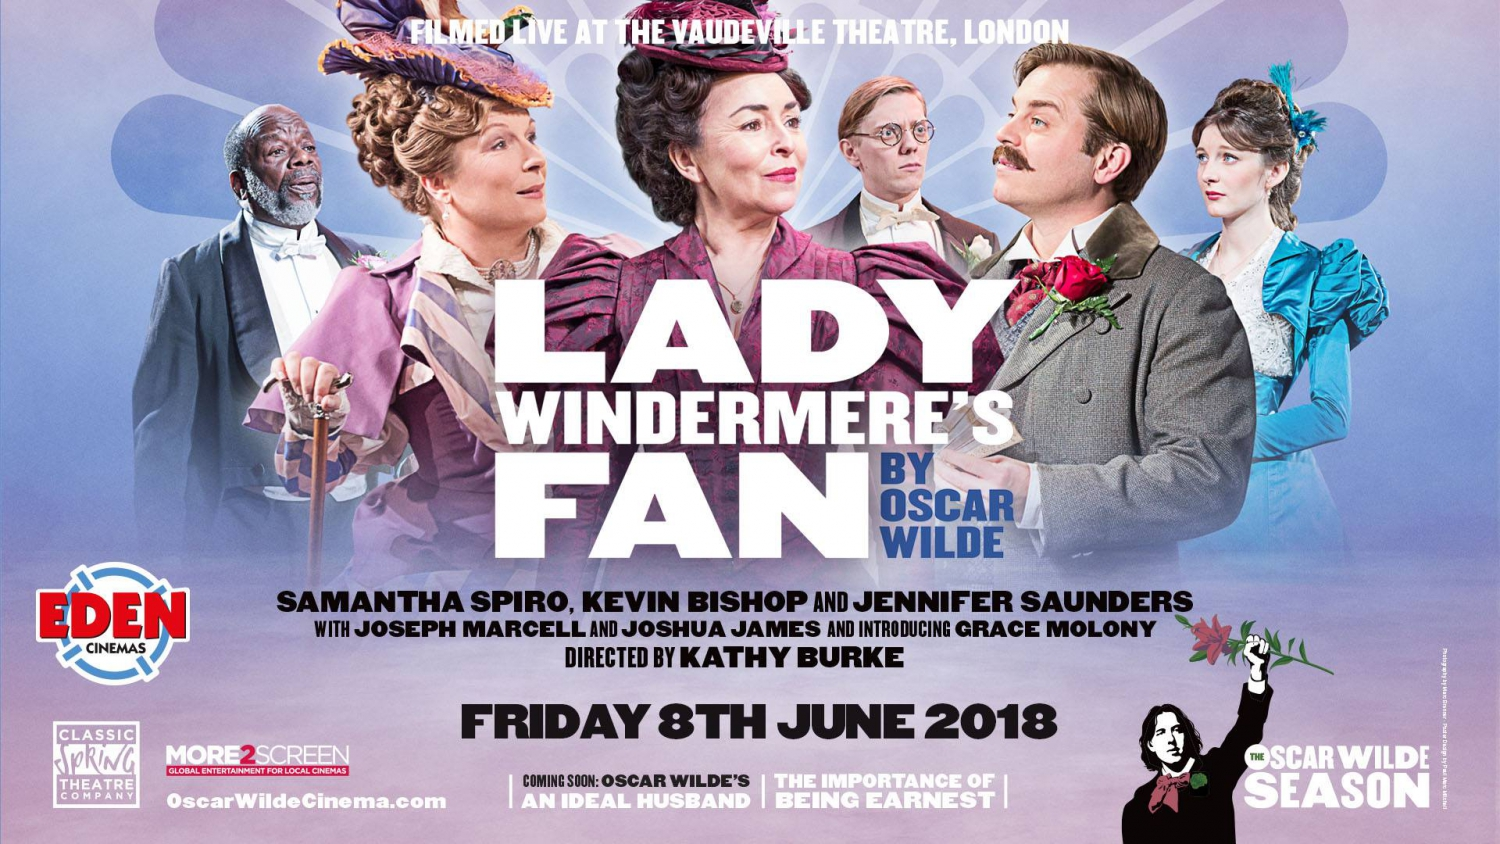 Oscar Wilde's Lady Windermere's Fan